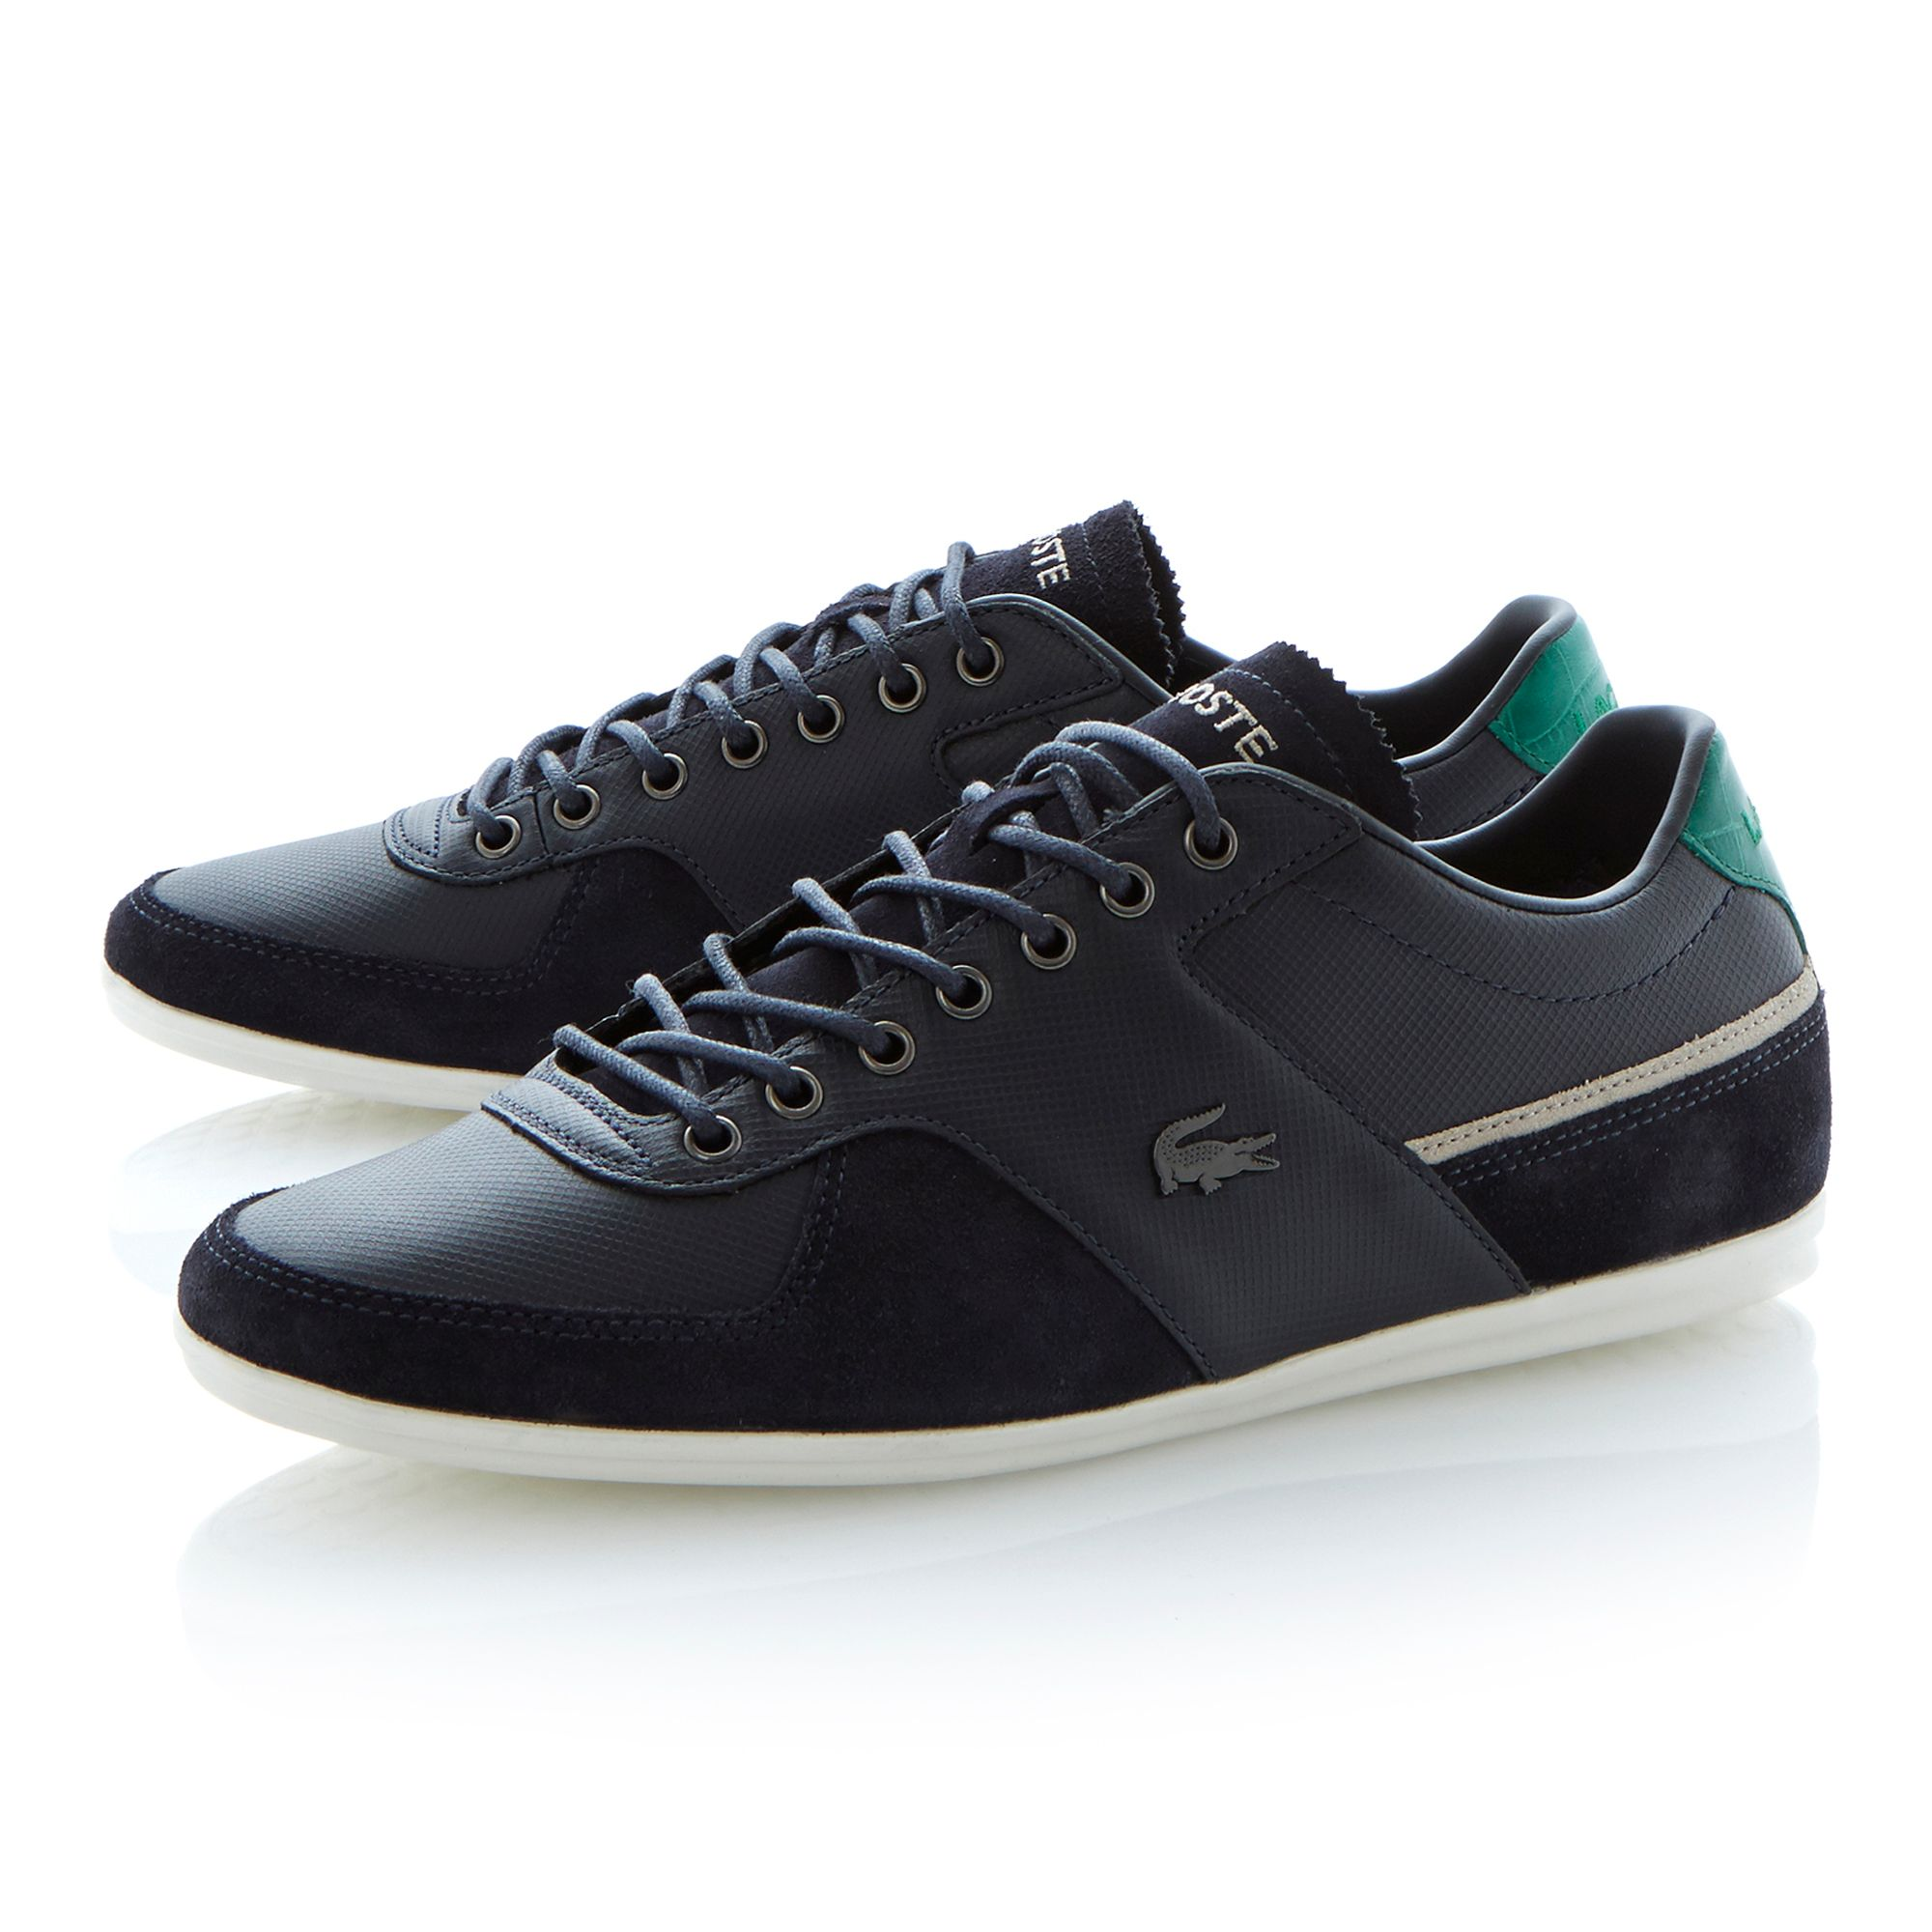 Tailore 15 premium lace up trainer